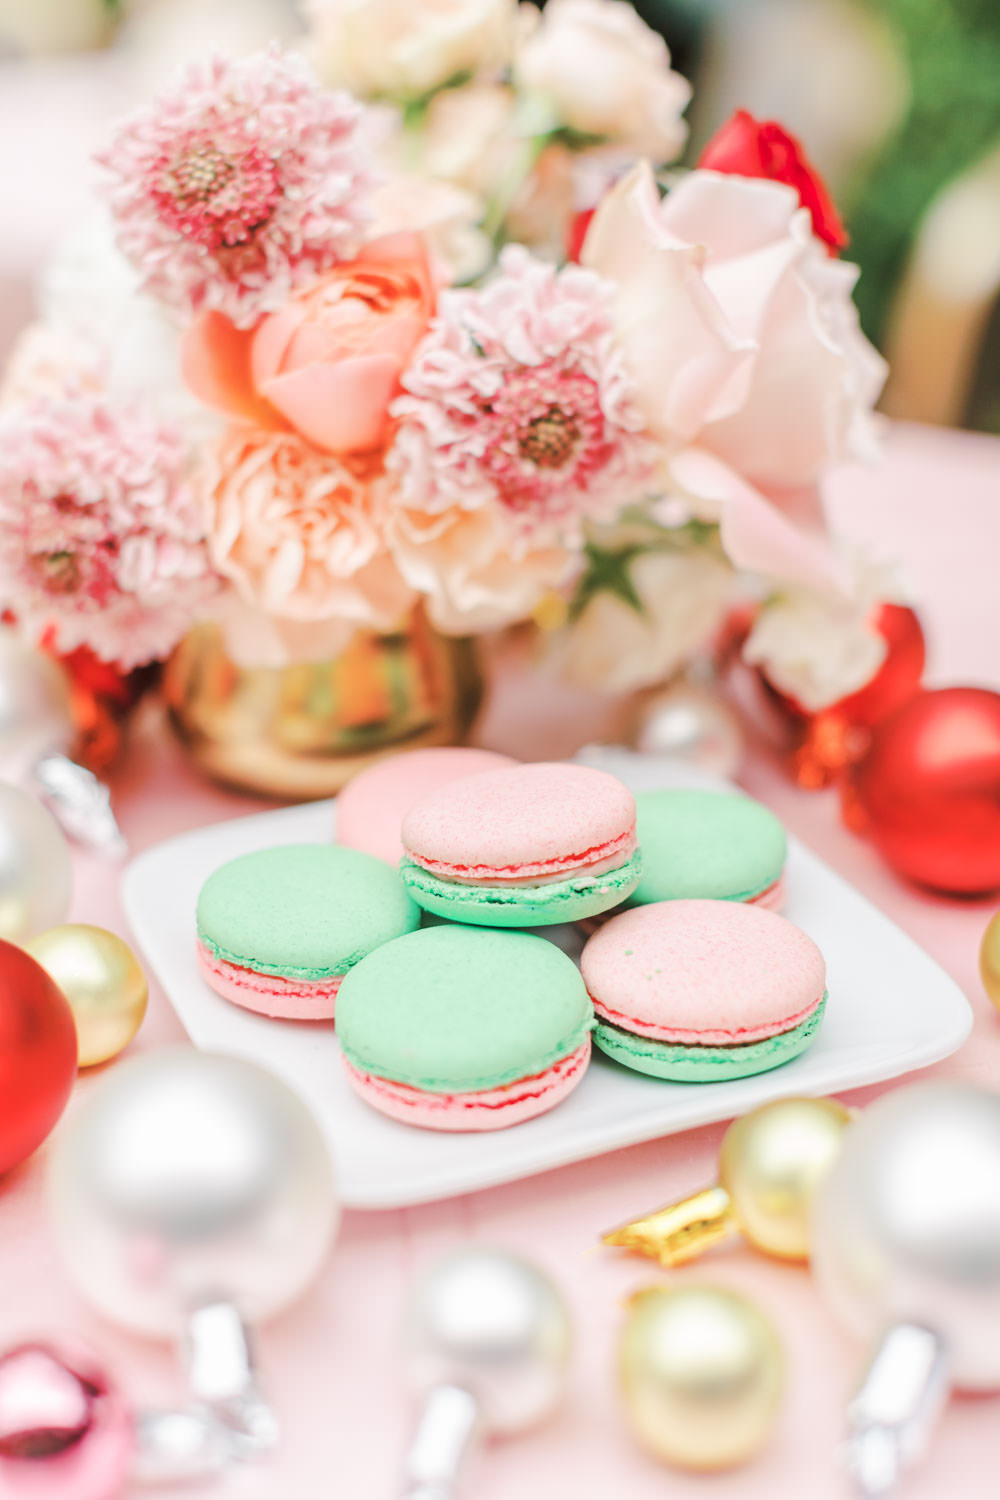 Chic Beverly Hills Hotel Bridal Shower cocktail table with pink drink and pink linens and pops of ivory and red in Los Angeles during Christmas decorations, pink and green macarons, Cavin Elizabeth Photography